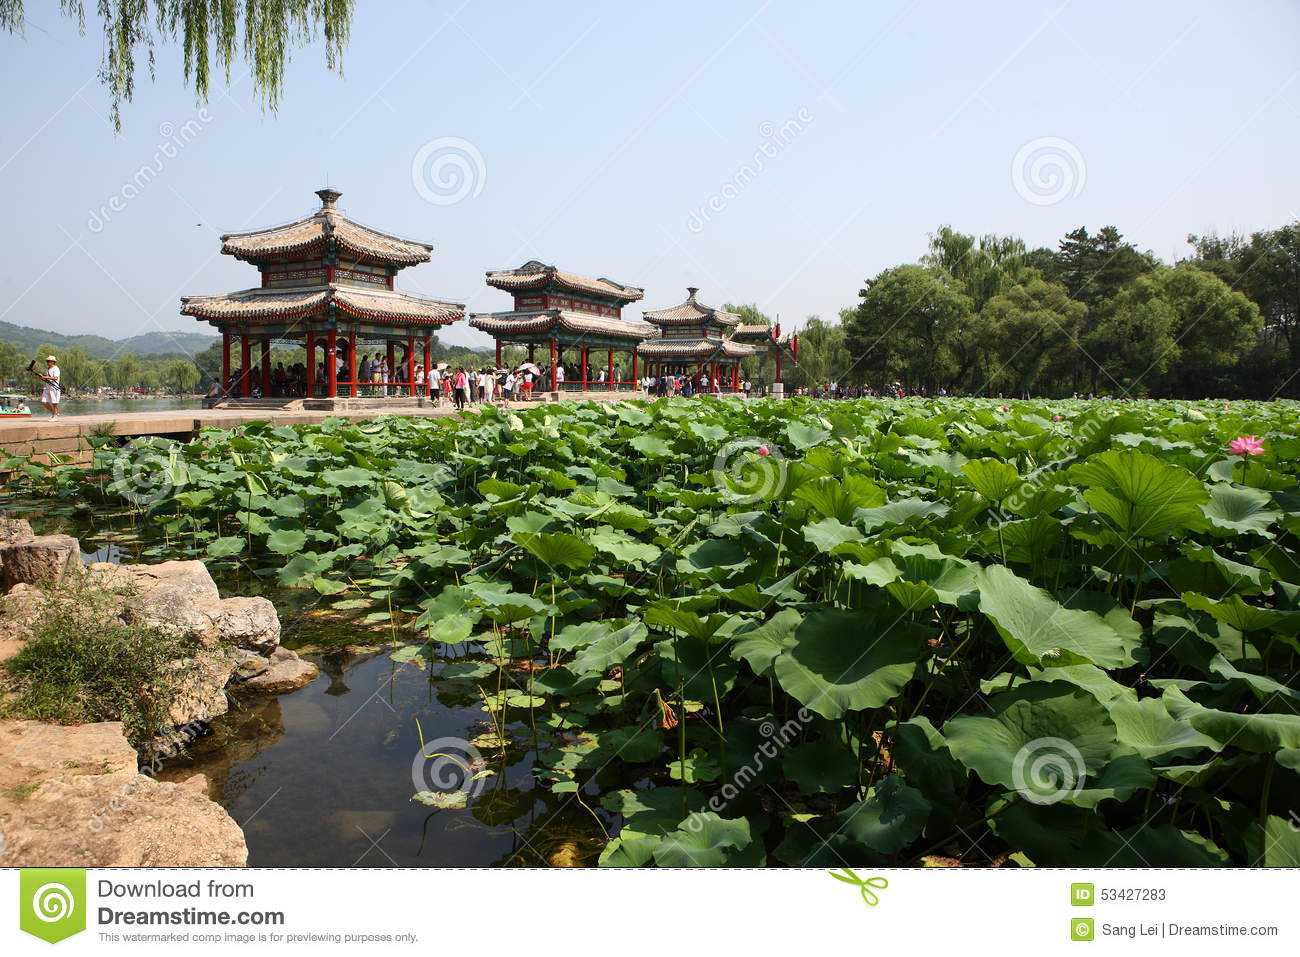 chengde mountain resort  putuo  hebei province by the Centripetal and Centrifugal Force Centripetal Force Apparatus